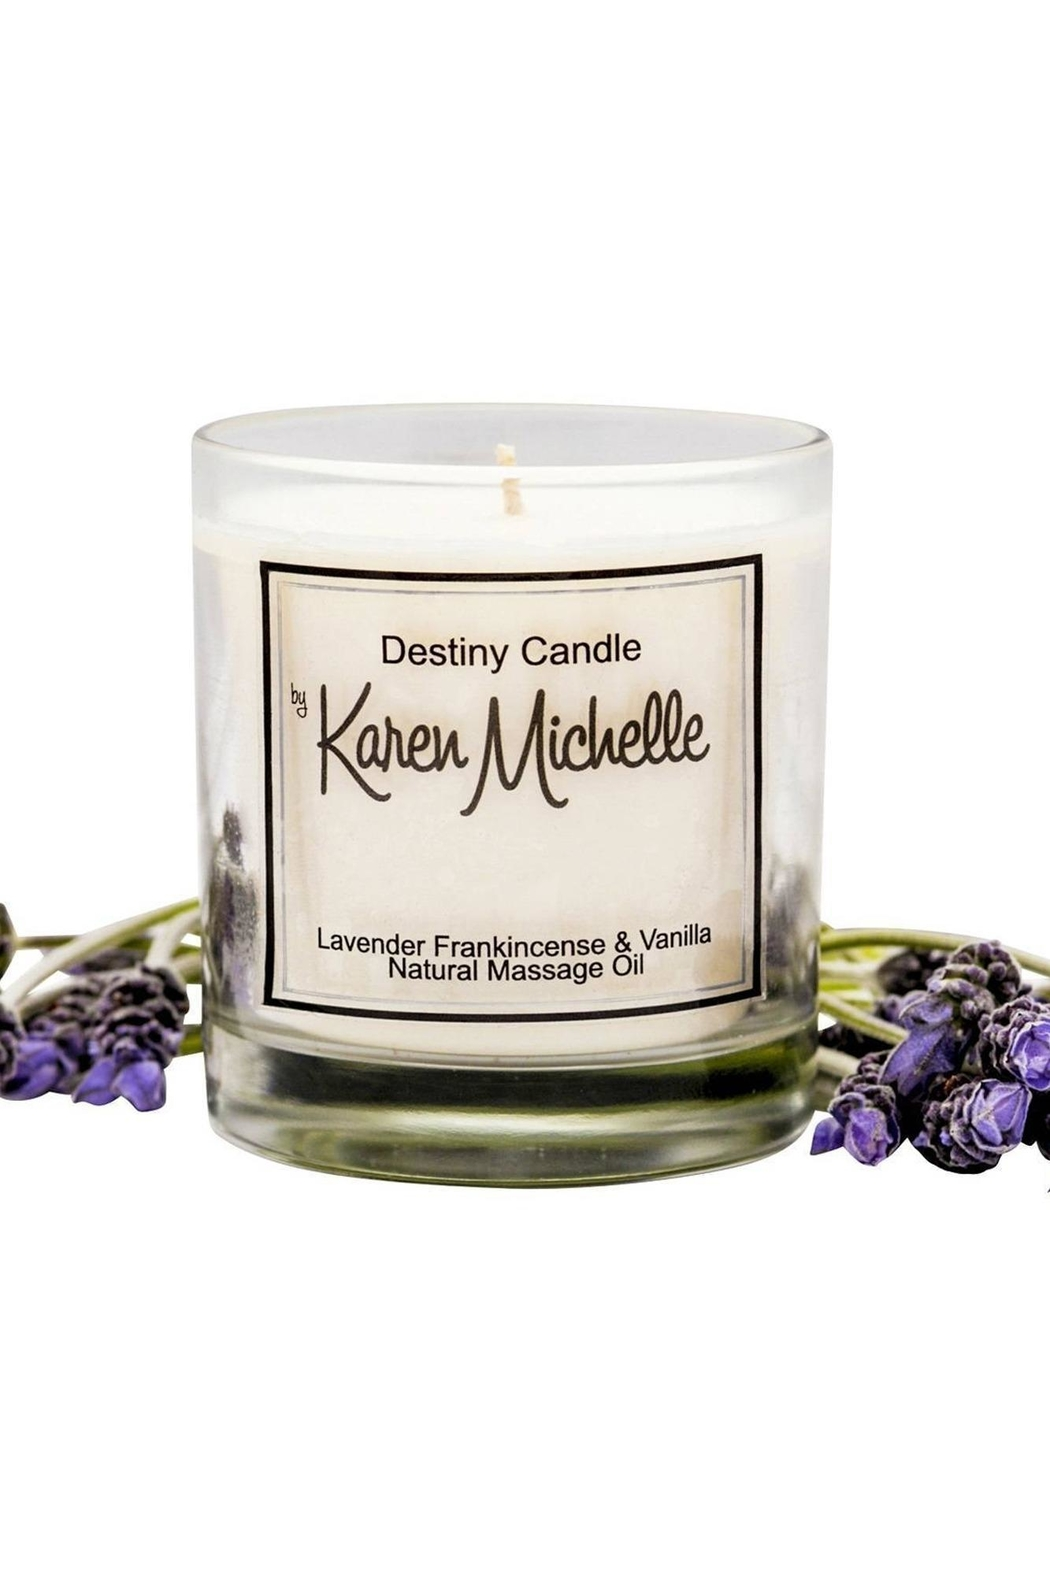 Destiny Candle by Karen Michelle Lavender And Frankincense - Main Image